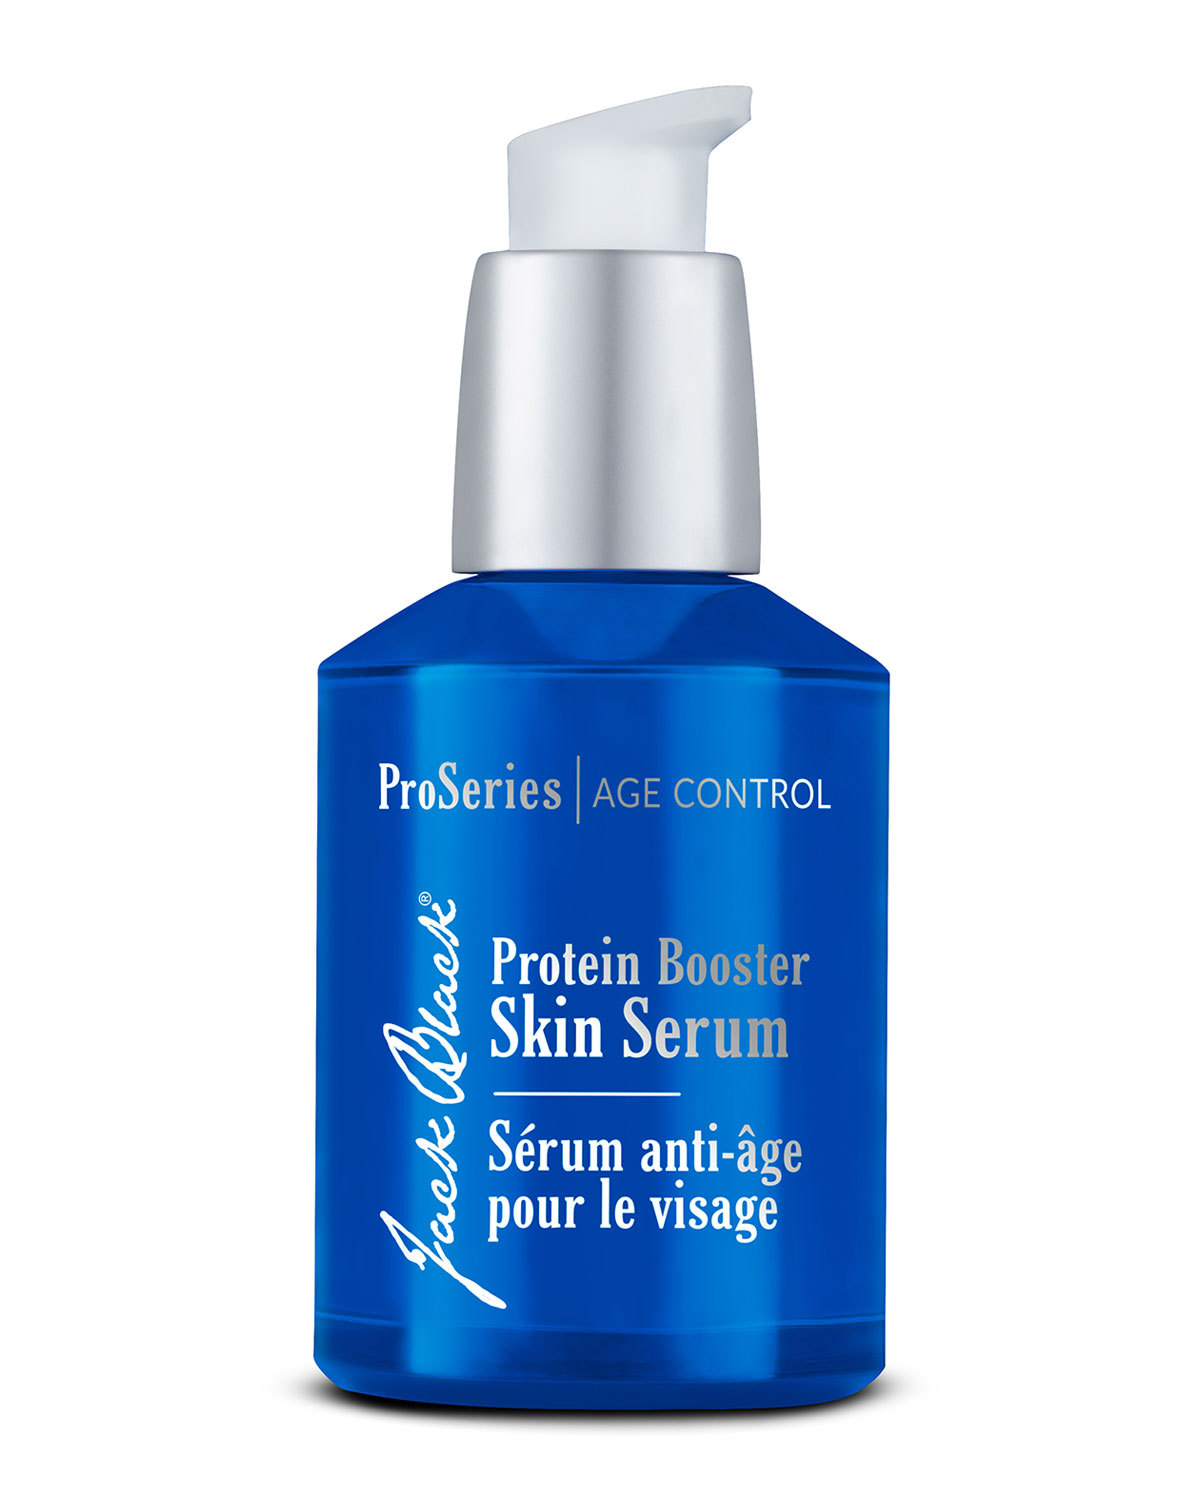 Jack Black 2 oz. Protein Booster Skin Renewal Serum